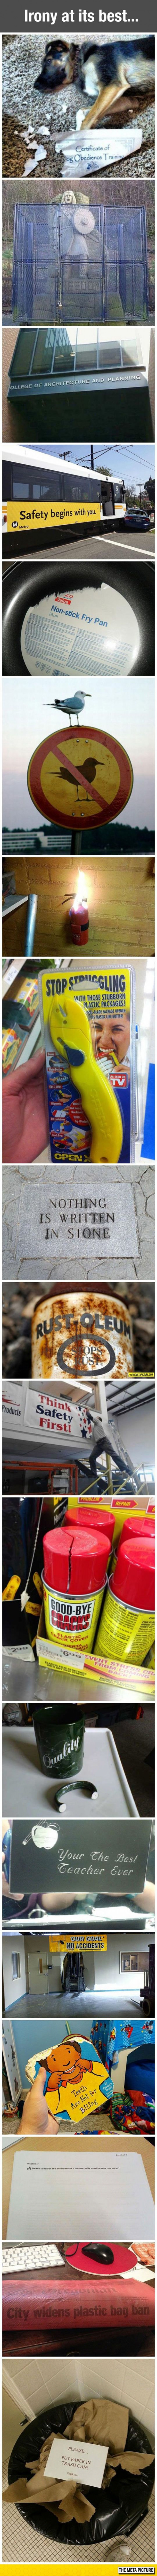 These 18 Pictures Show Irony At It's Best